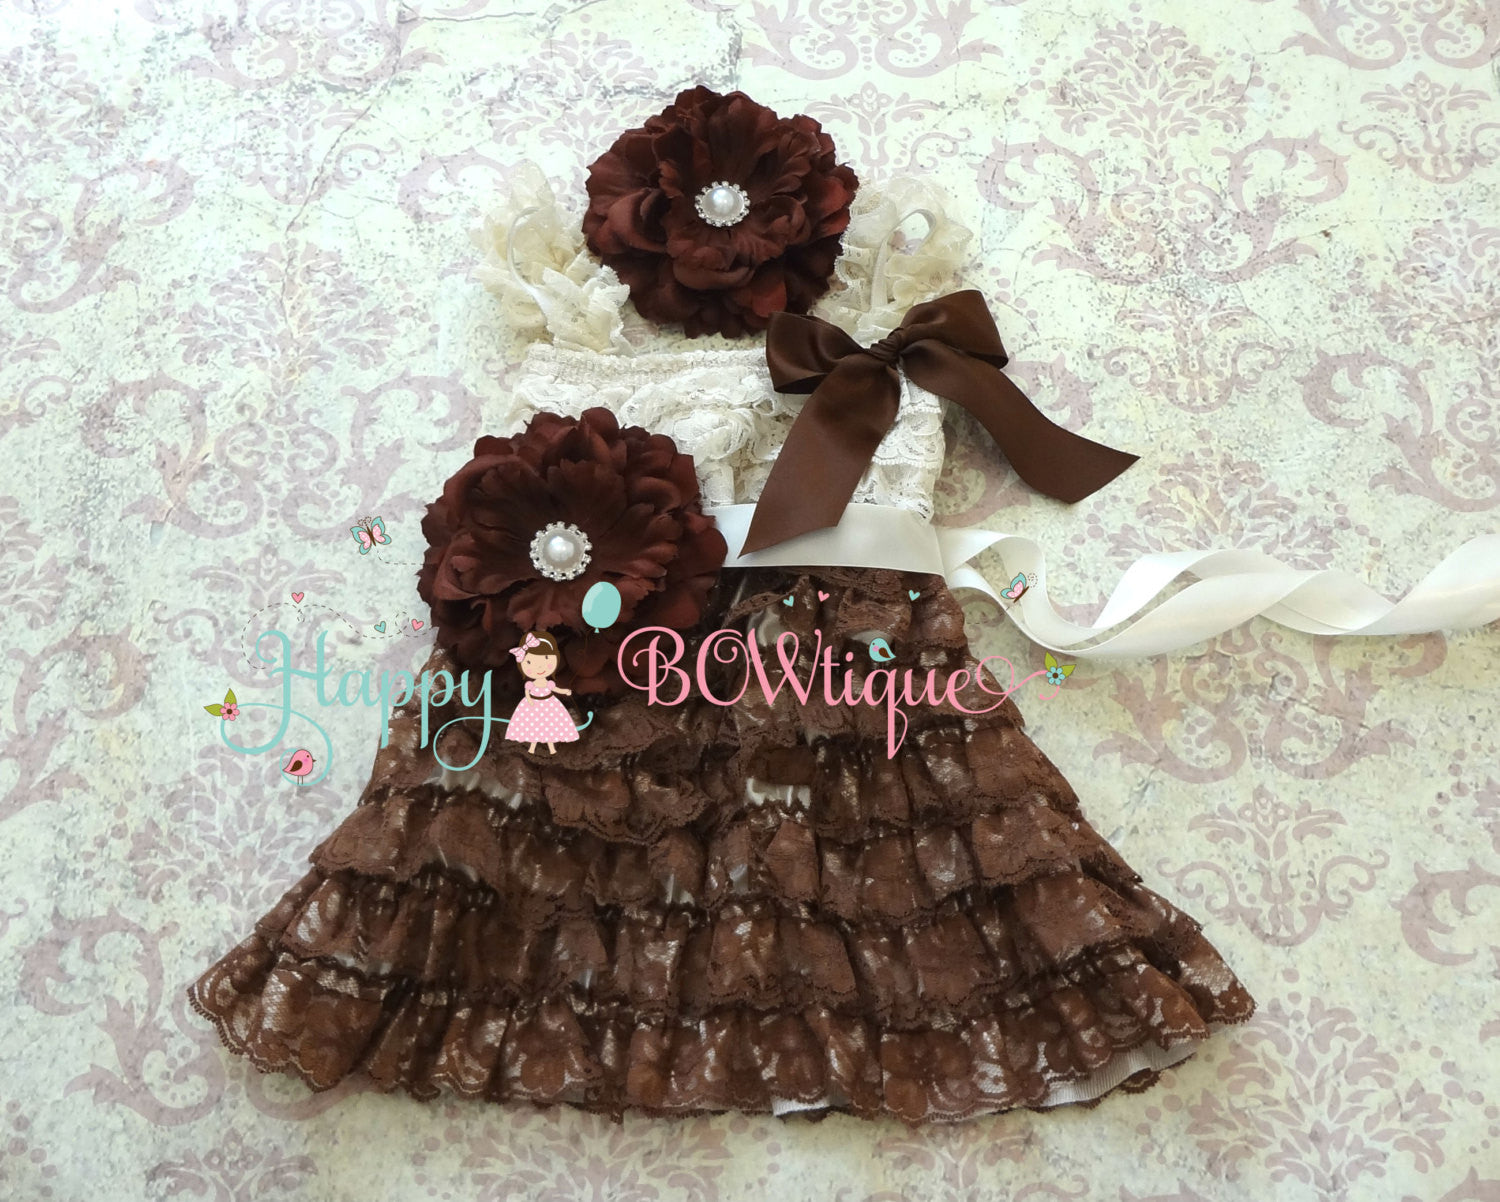 Country Flower girls dress/ Girl's Chocolate Beige Flower Dress set - Happy BOWtique - children's clothing, Baby Girl clothing